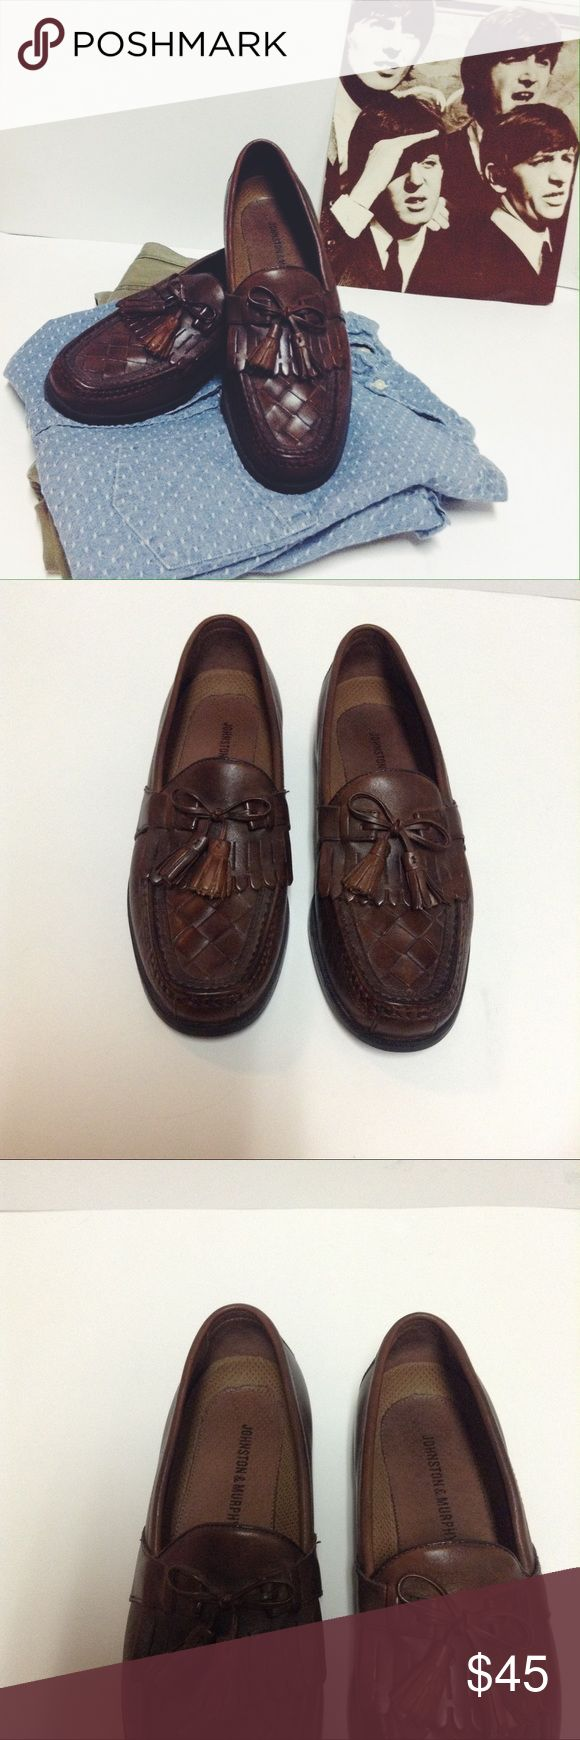 Brown leather Johnston & Murphy tassel loafers Soft leather Johnston& Murphy woven front tassel loafers great condition with slight scuffing on soles of shoes size 9 Johnston & Murphy Shoes Loafers & Slip-Ons